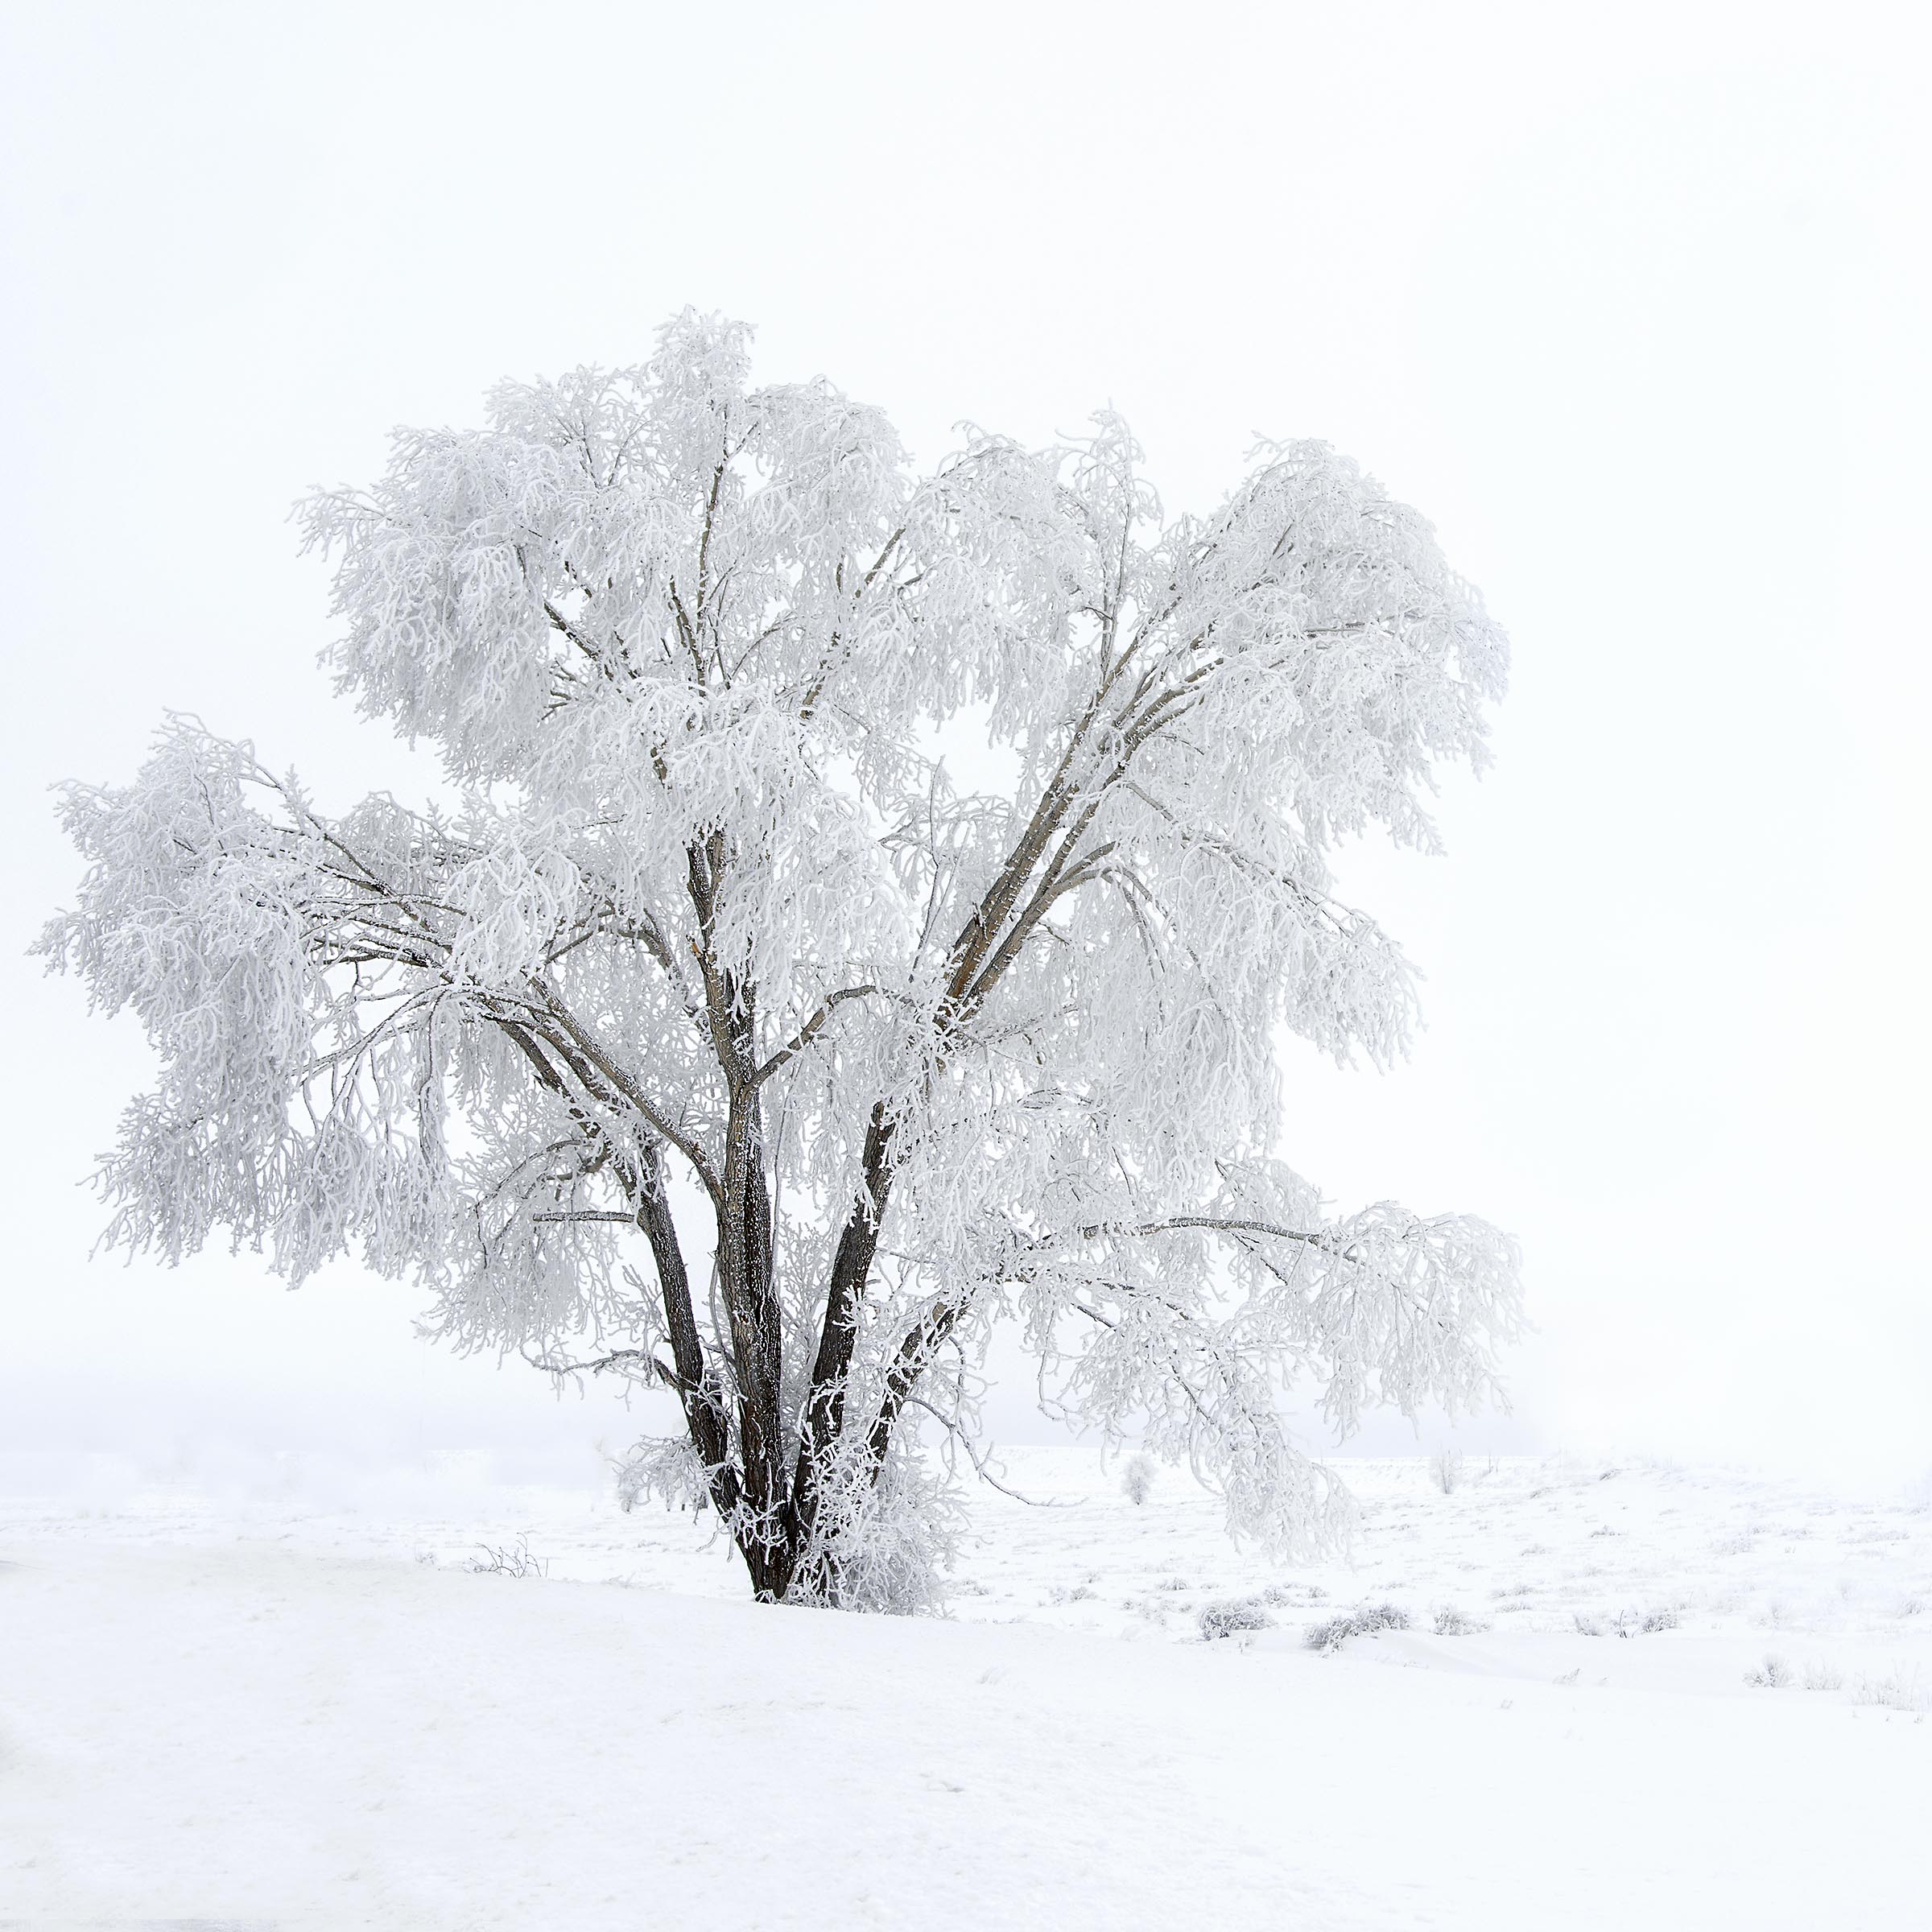 Frosty_morning_fog_1